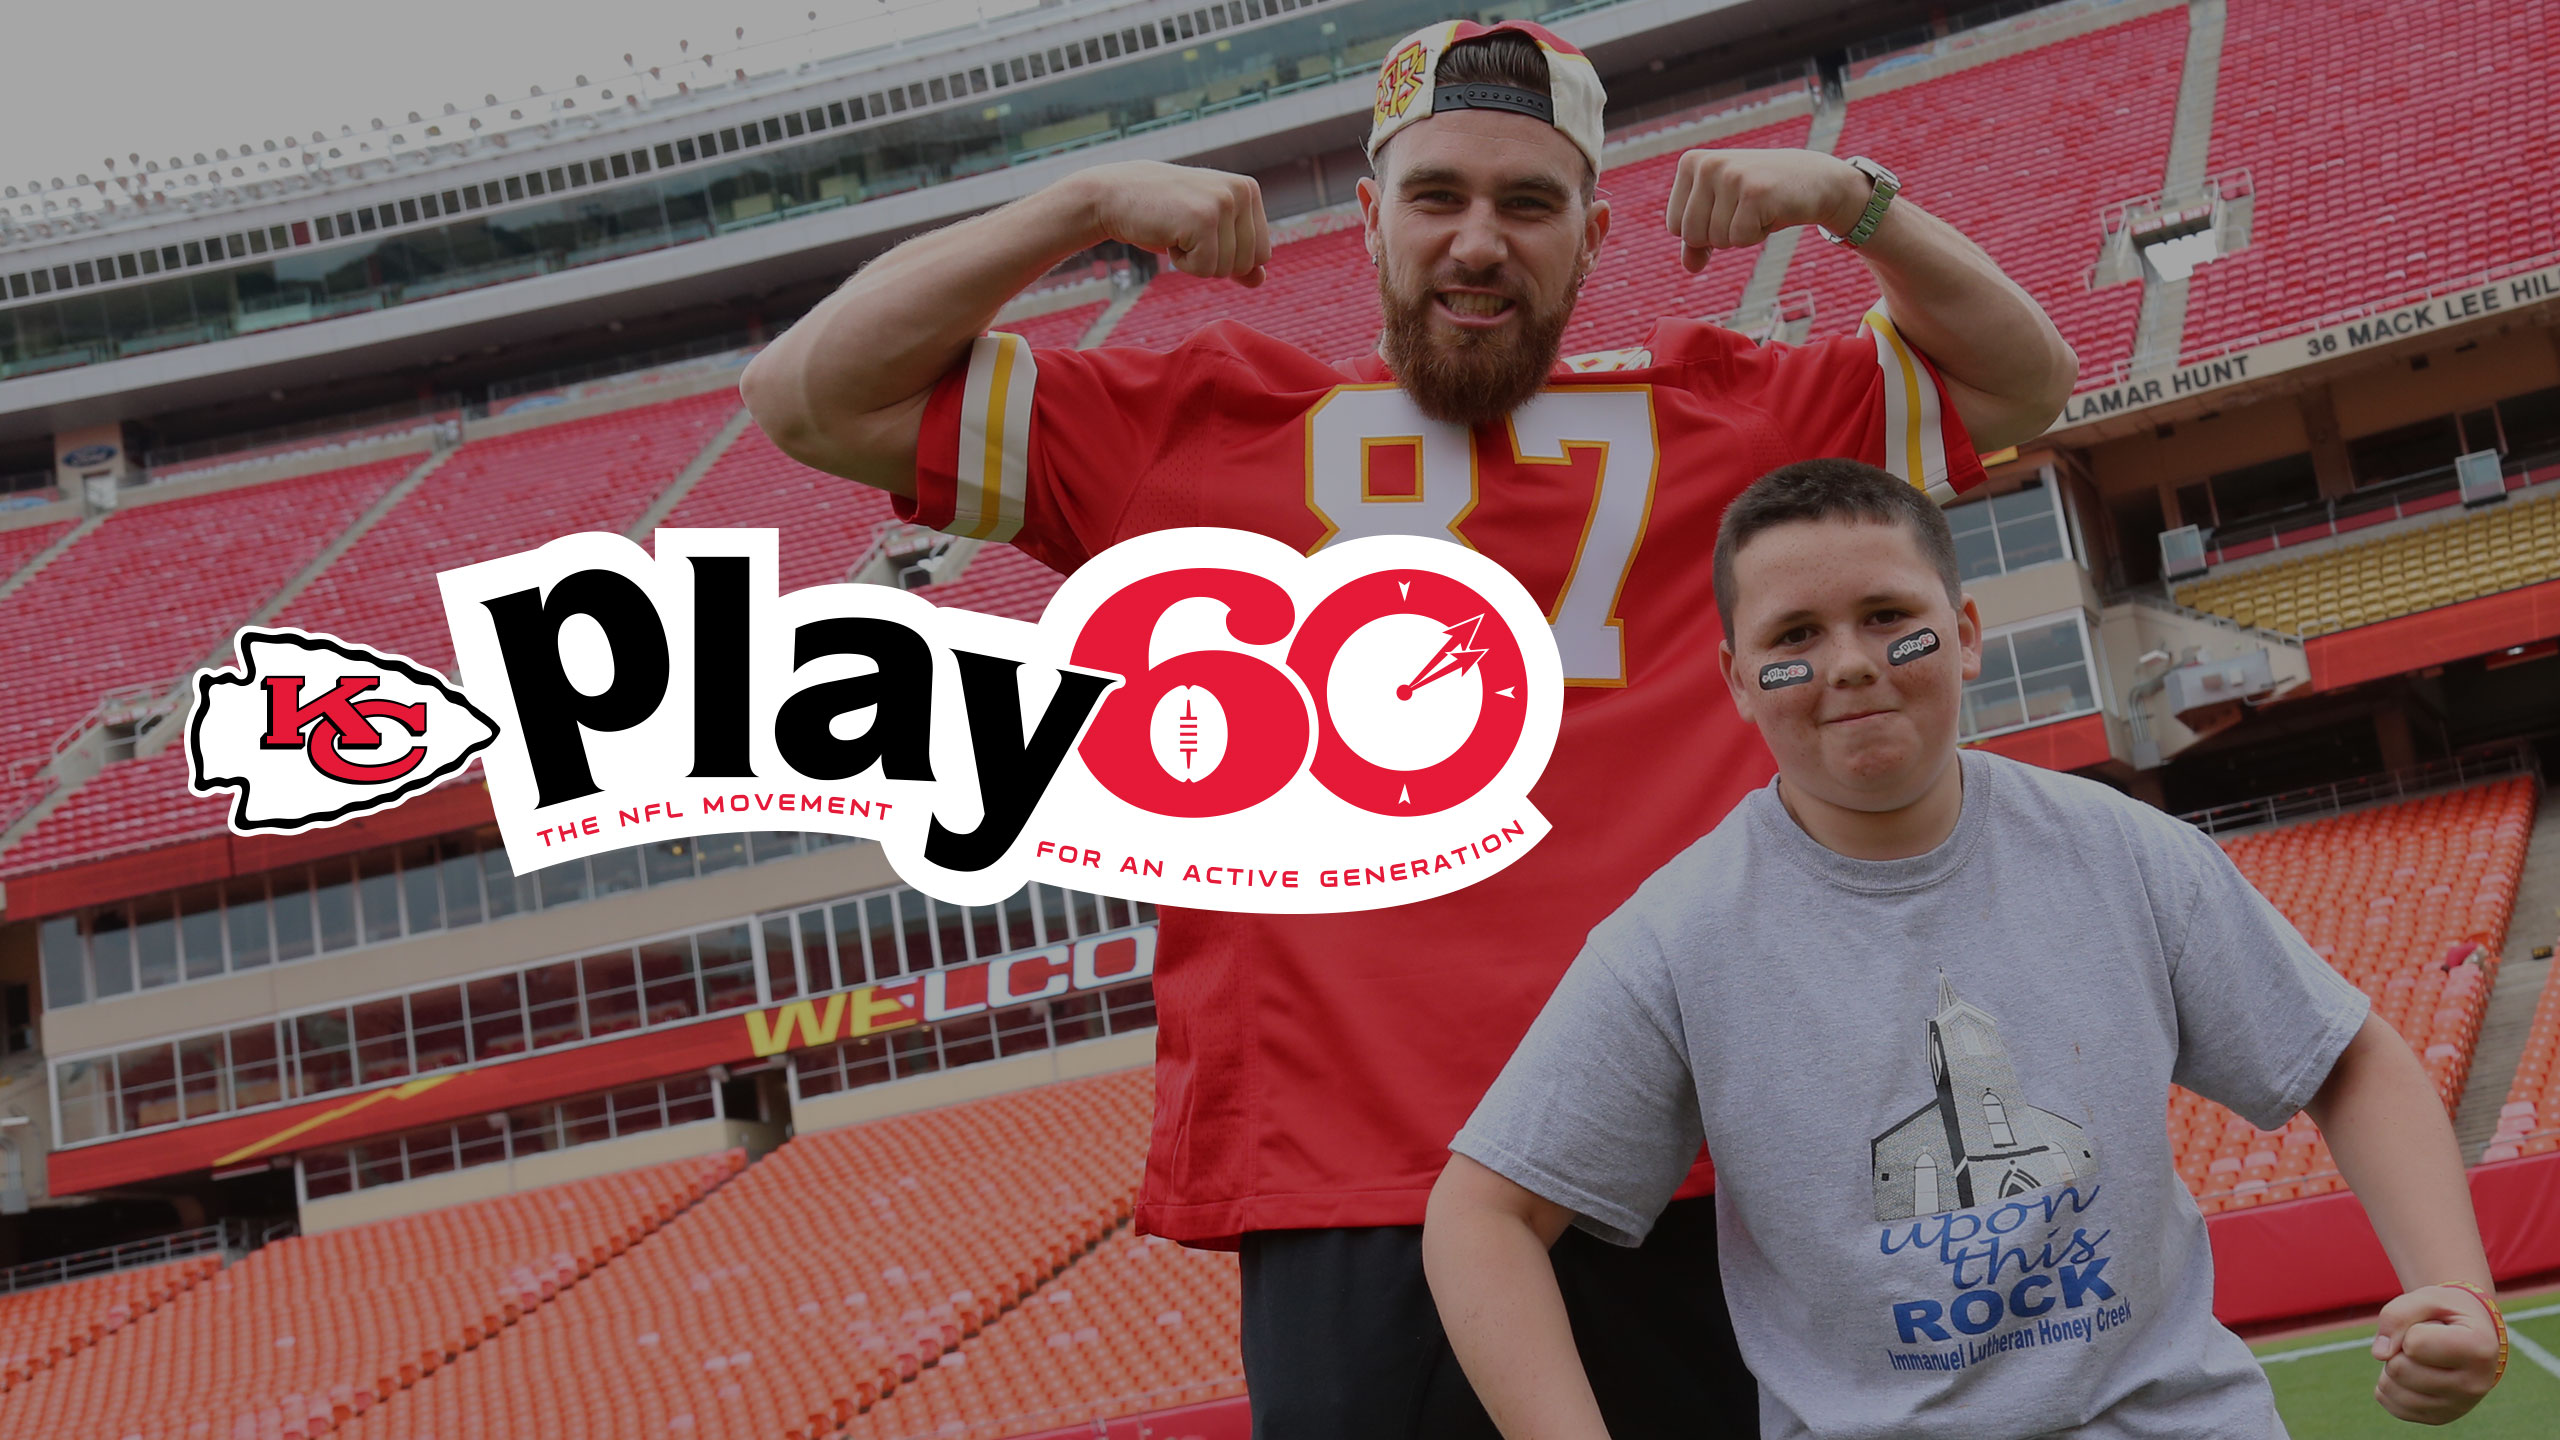 8510c3b1 Play 60 is the NFL's national campaign designed to encourage young fans to  be active for 60 minutes a day. The Play 60 challenge was started in  response to ...